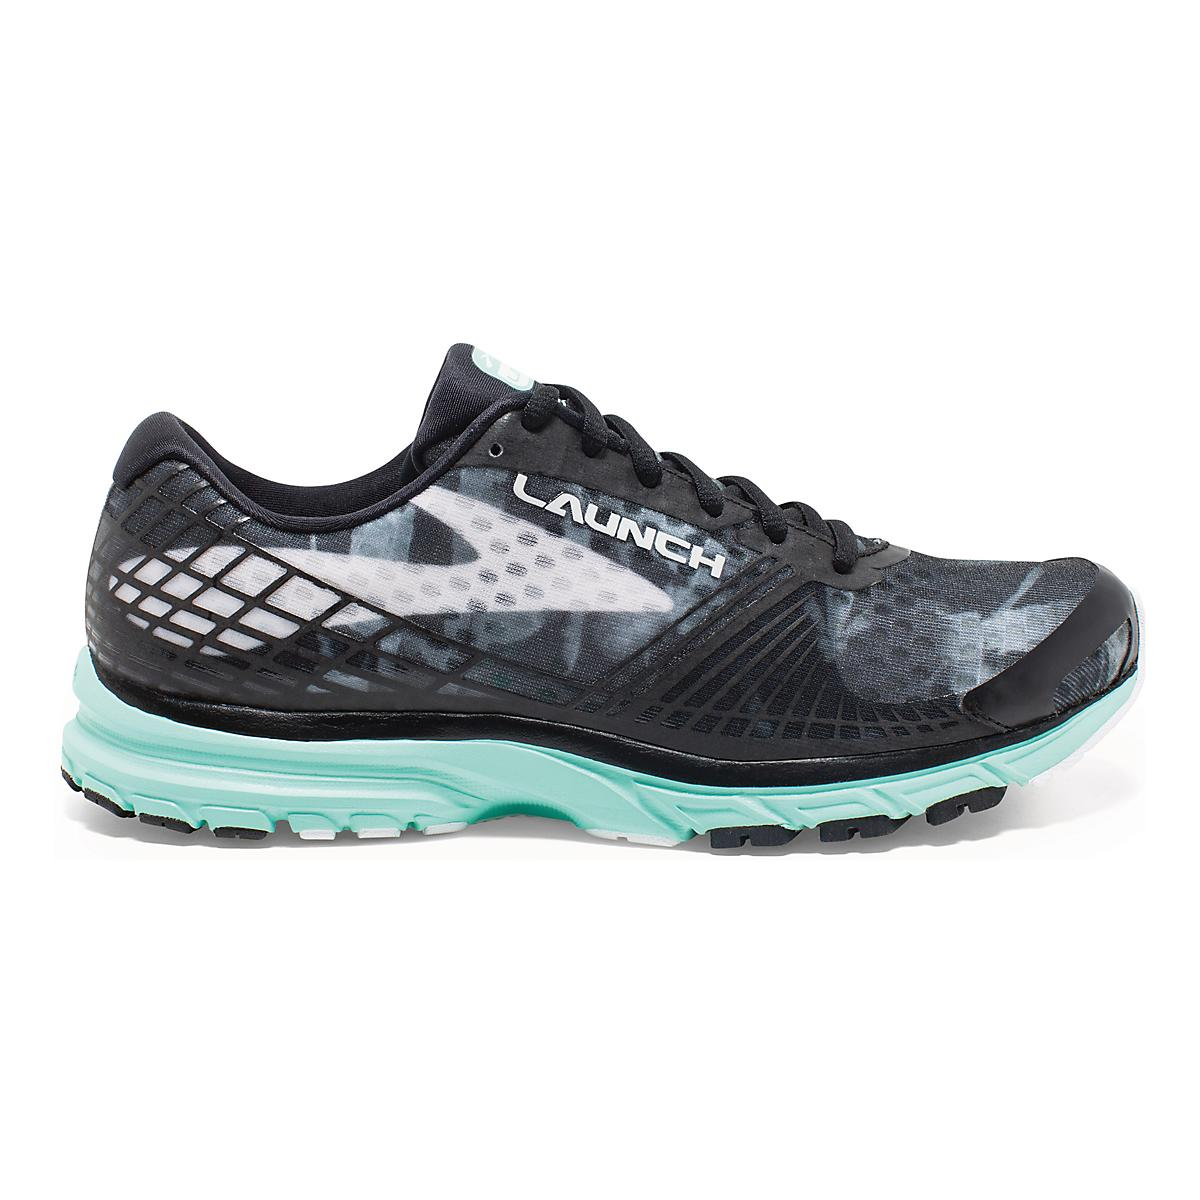 83d11fa9e73 Womens Brooks Launch 3 Running Shoe at Road Runner Sports